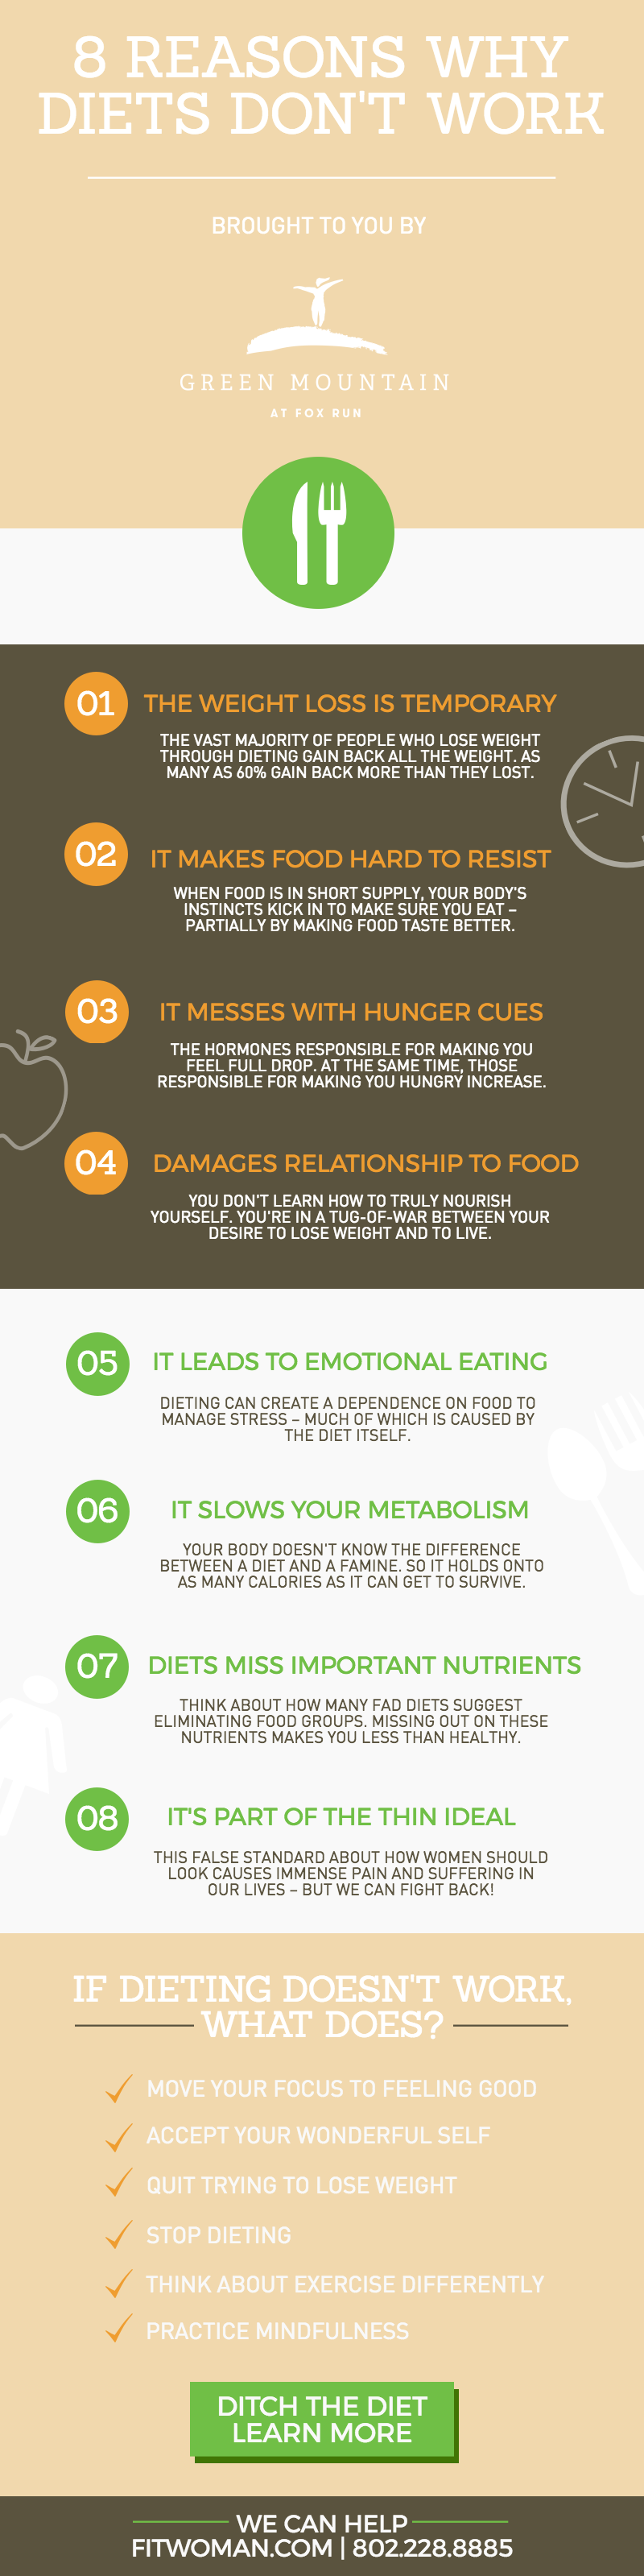 8 Reasons Why Diets Don't Worl